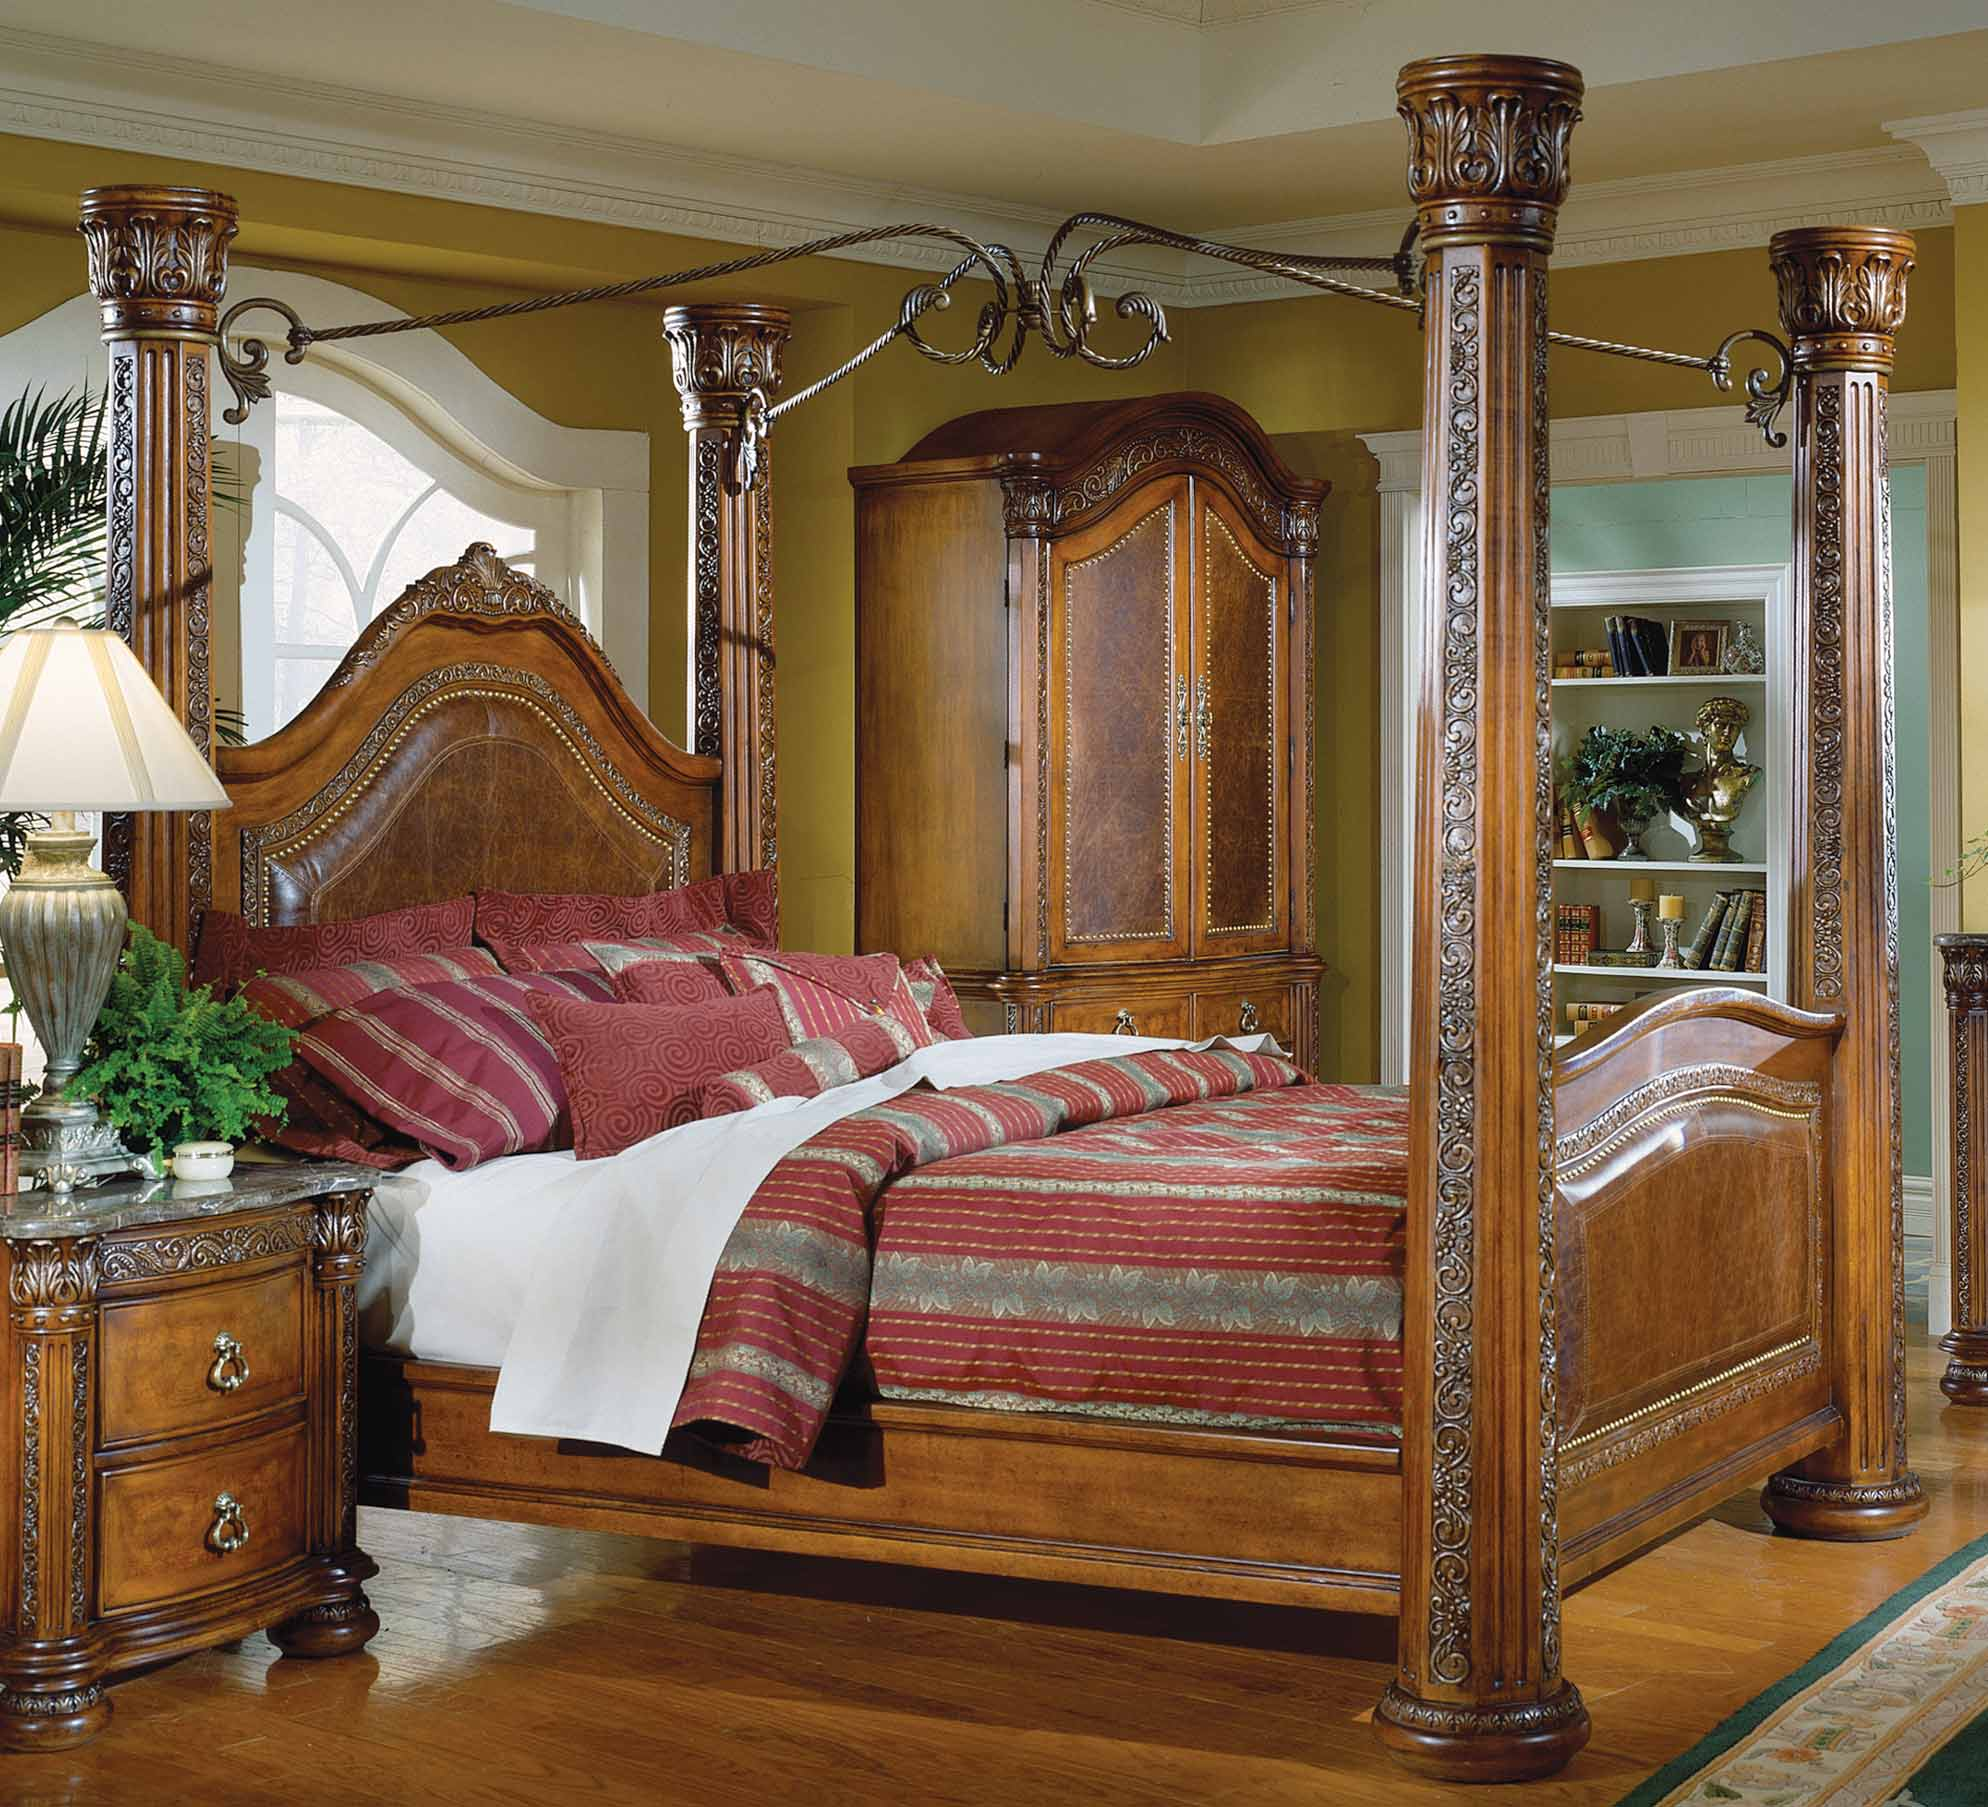 Homelegance spanish hills canopy bed with leather 851 1 for Furniture in spanish